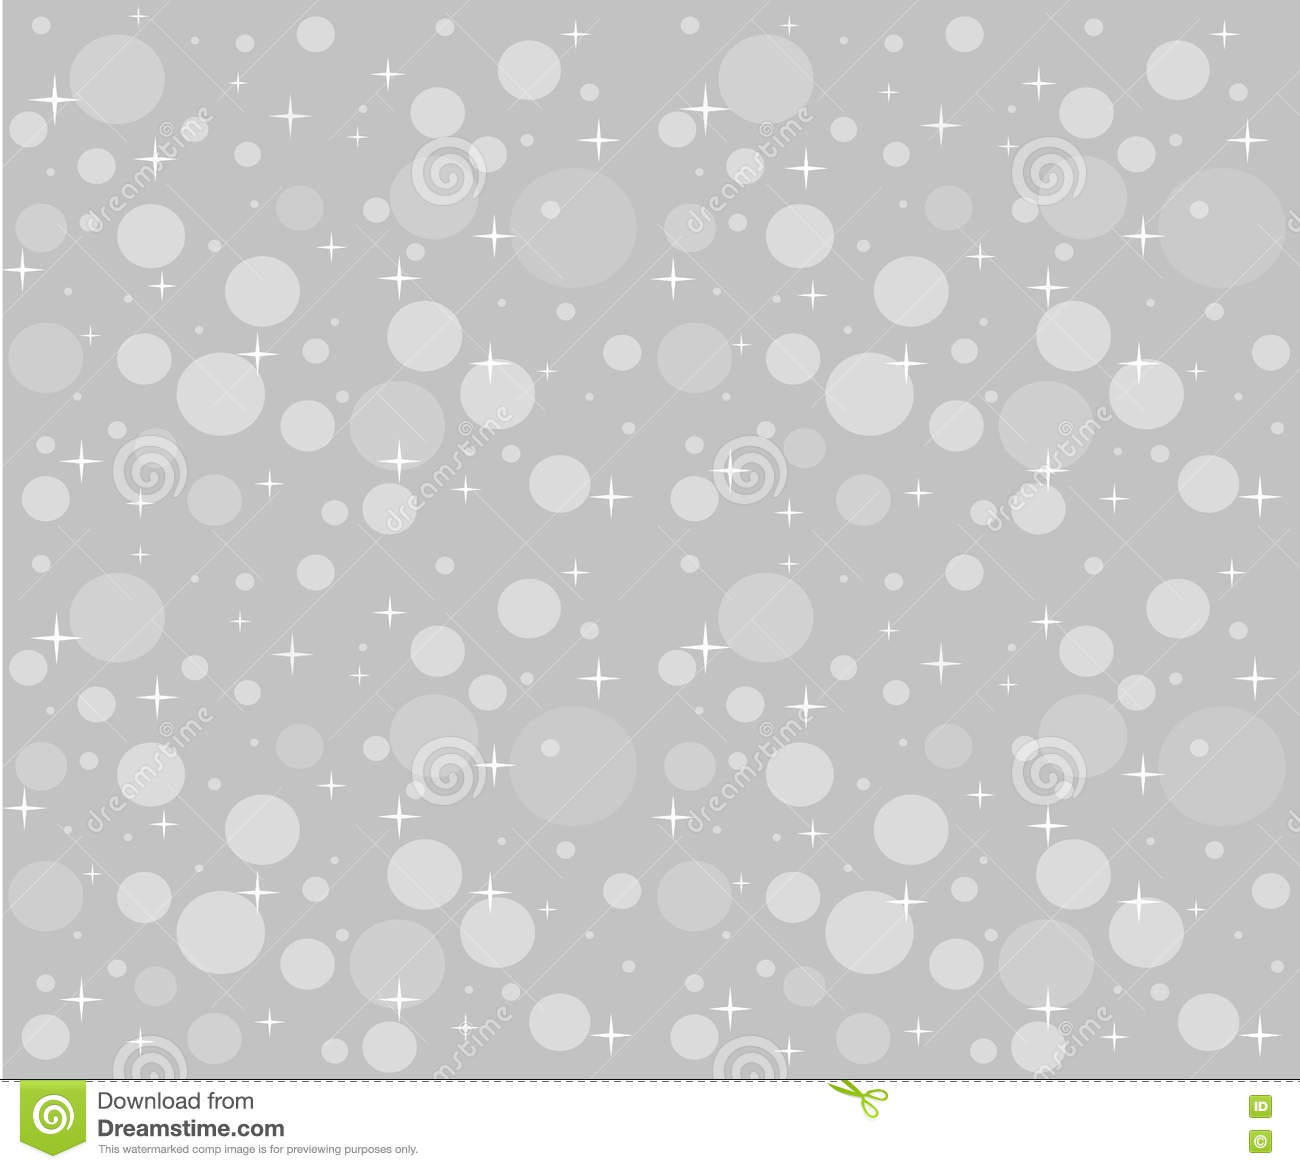 Free Download Of Christmas Wallpaper With Snow Falling Christmas Snowfall On The Background Of Grey Sky Stock